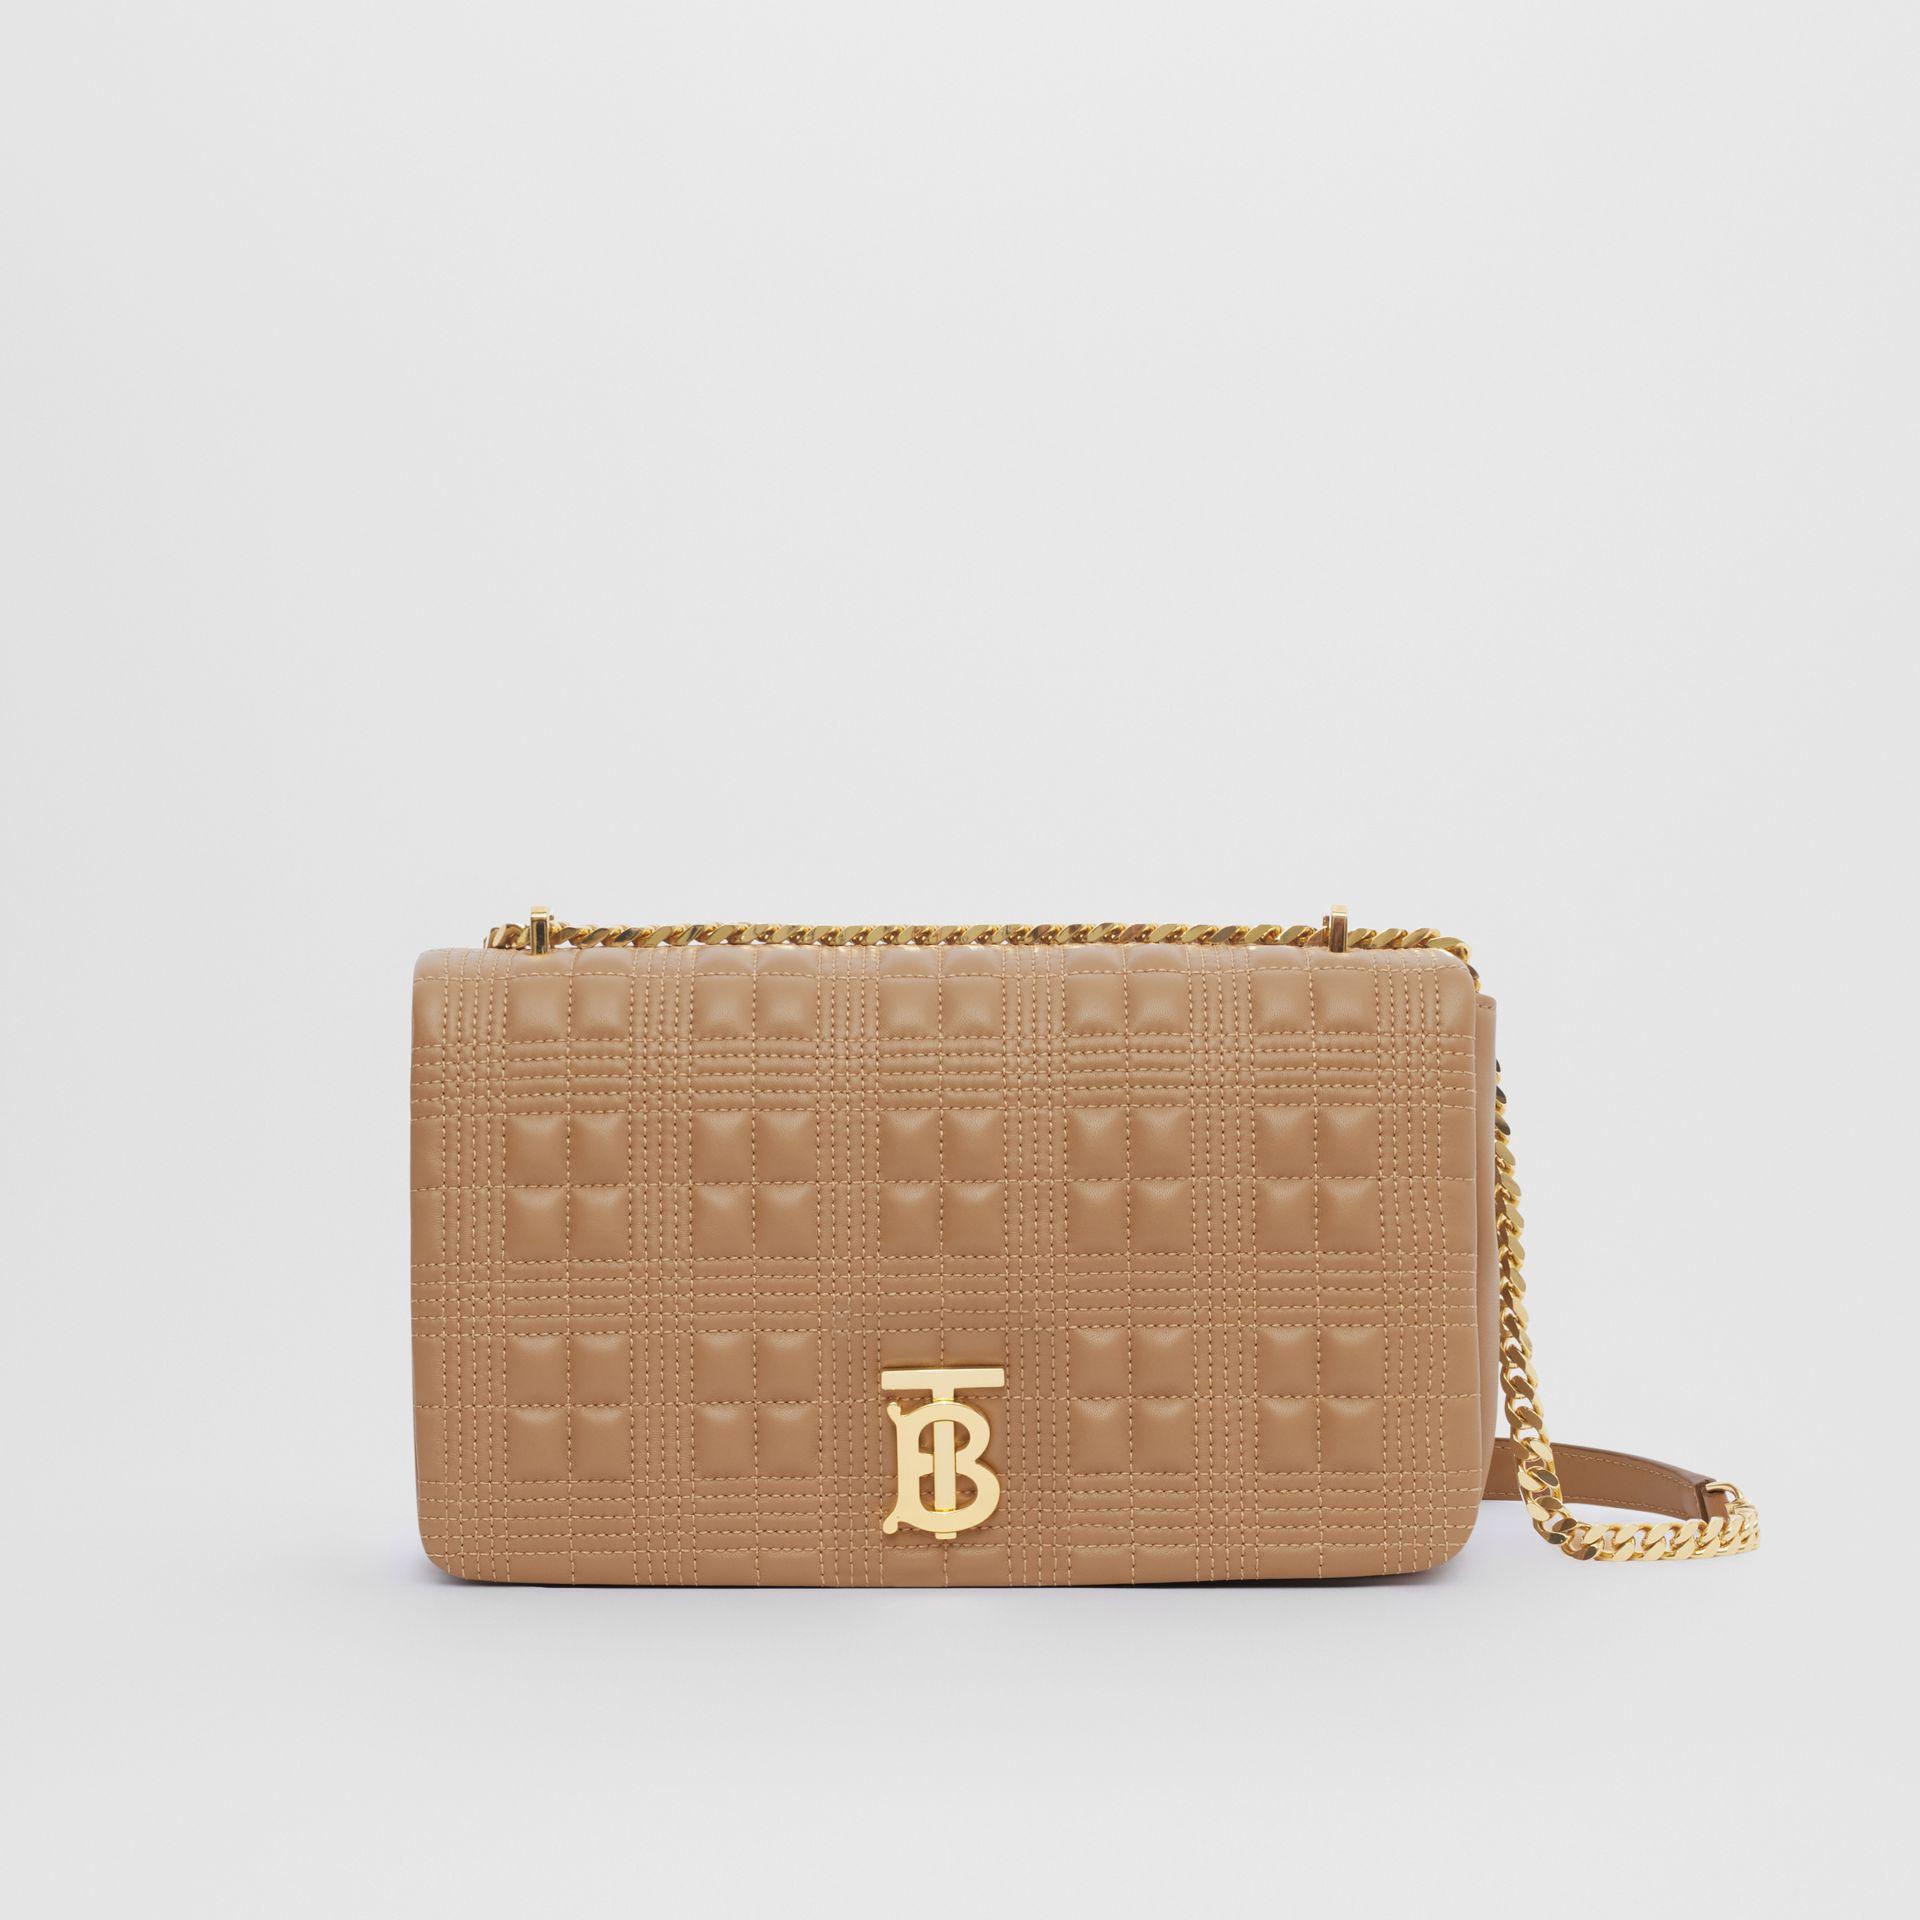 Medium Quilted Lambskin Lola Bag in Camel/light Gold - Women | Burberry - gallery image 0